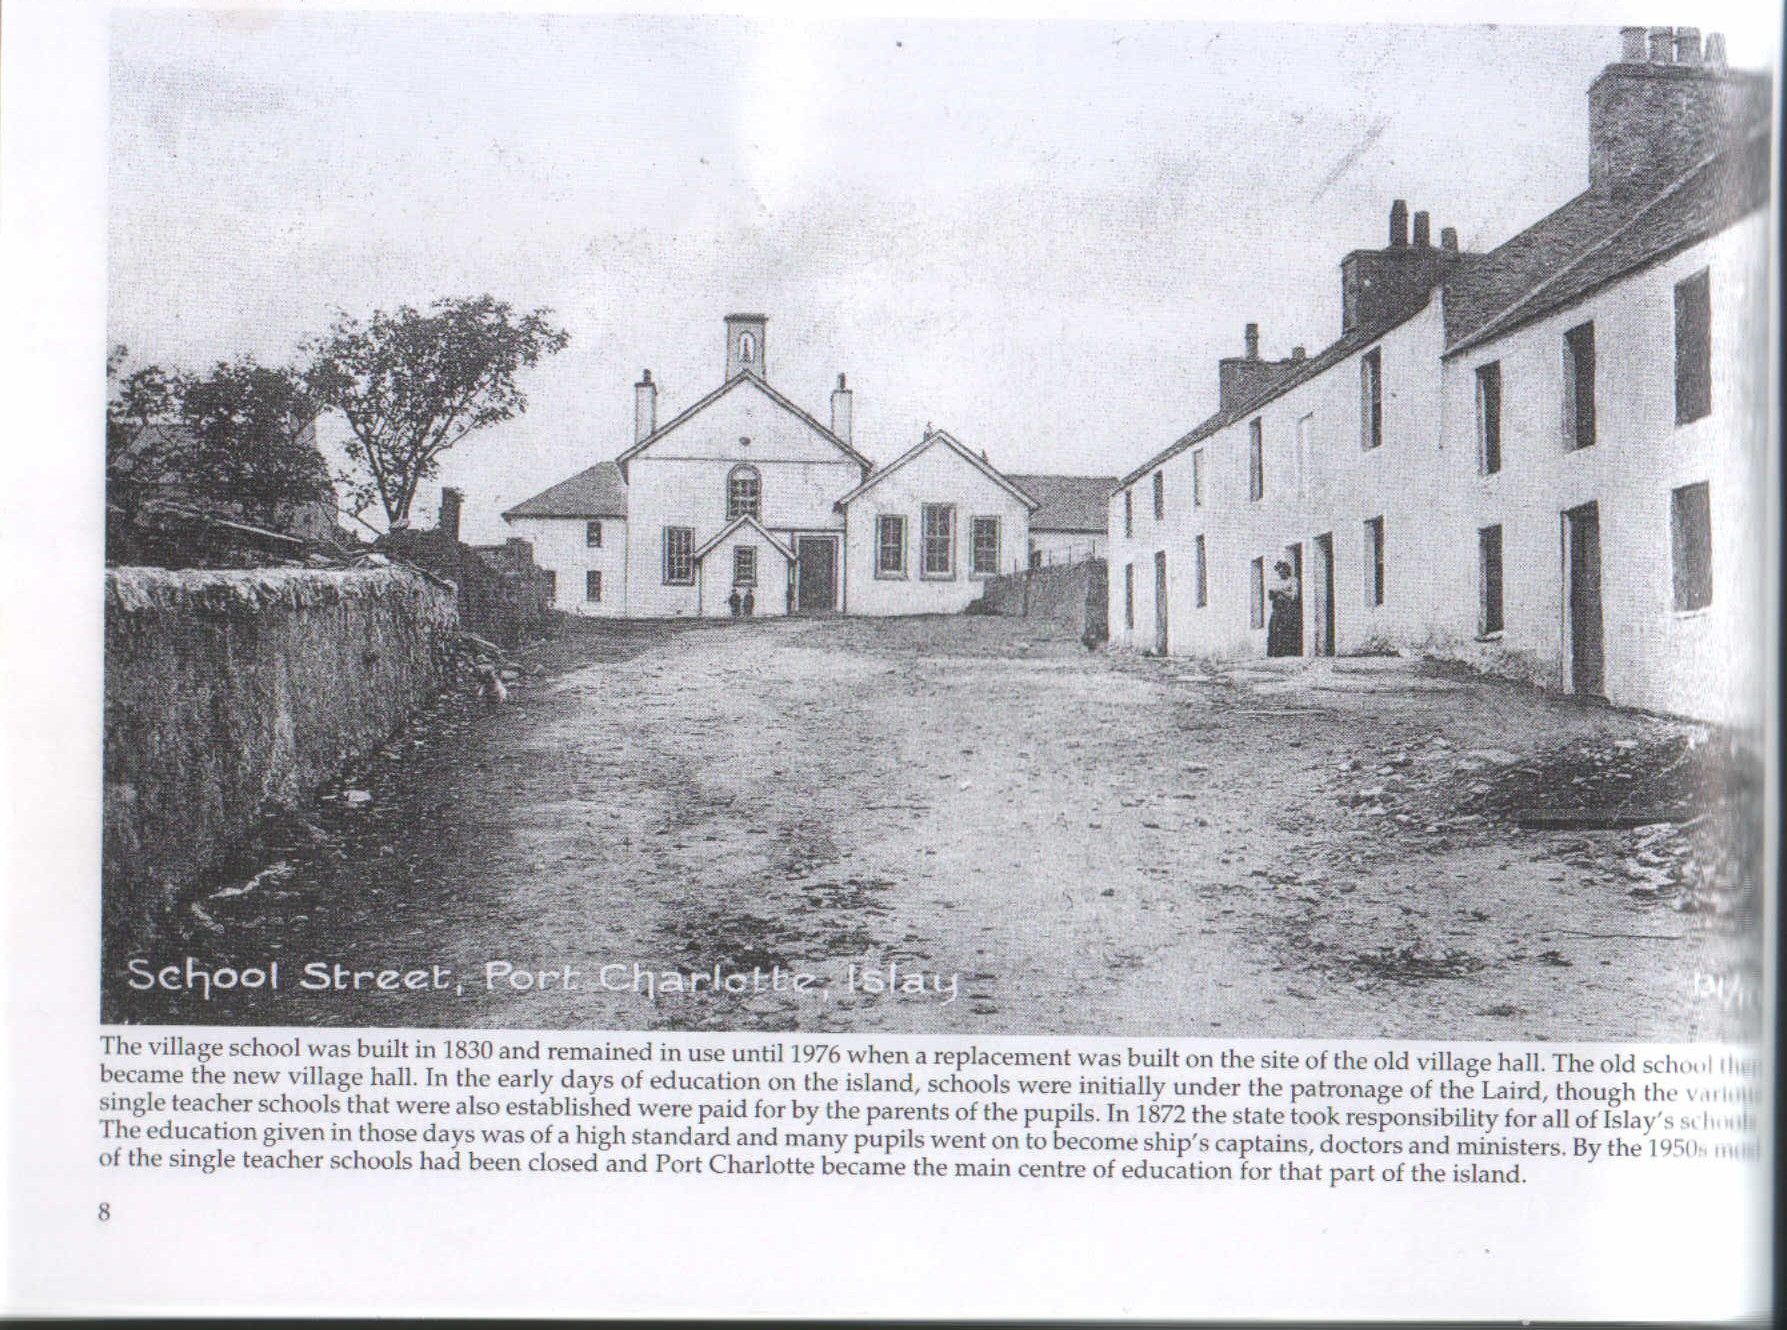 Historic photo of the Hall and School Street